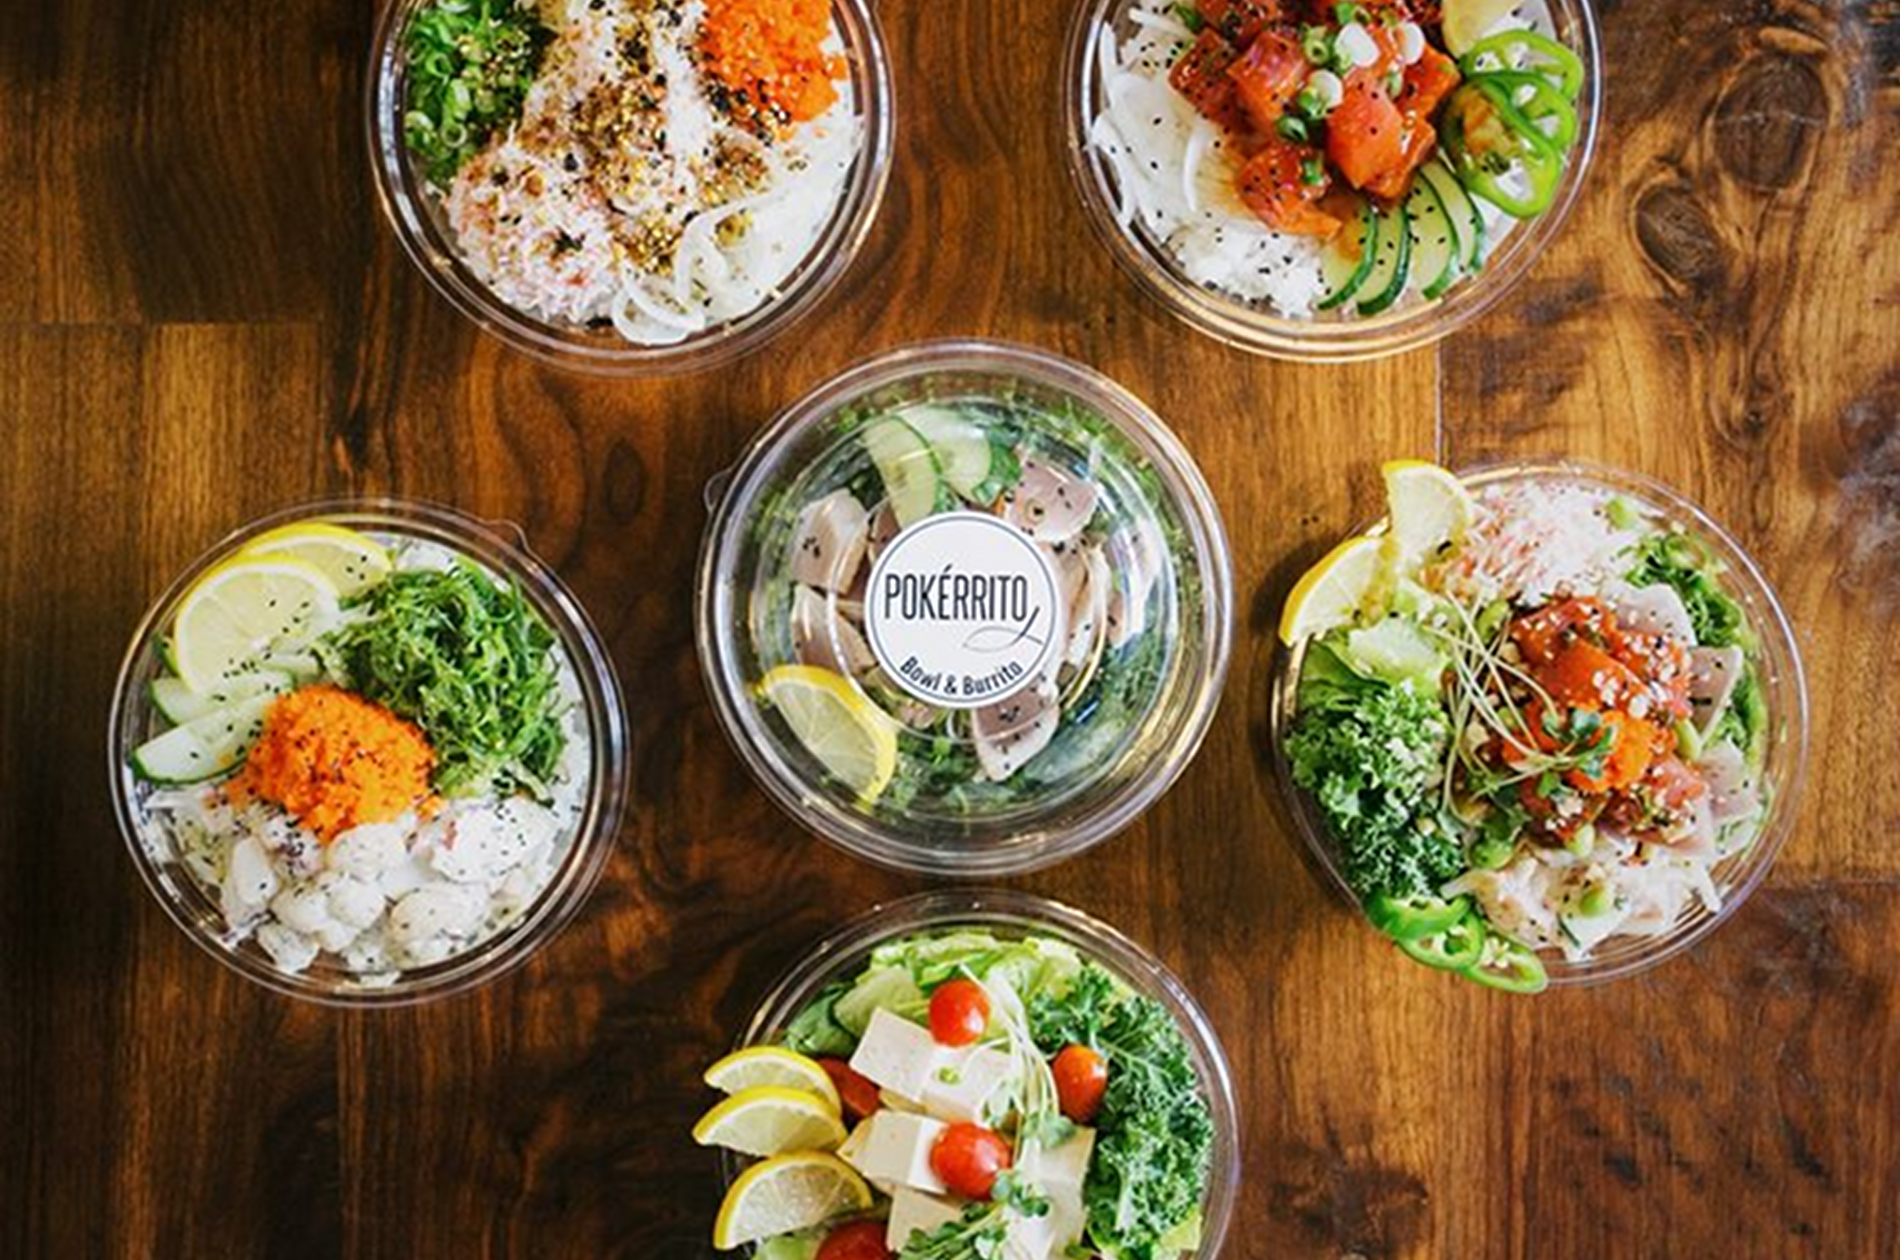 Pokerrito Poke Bar in Vancouver